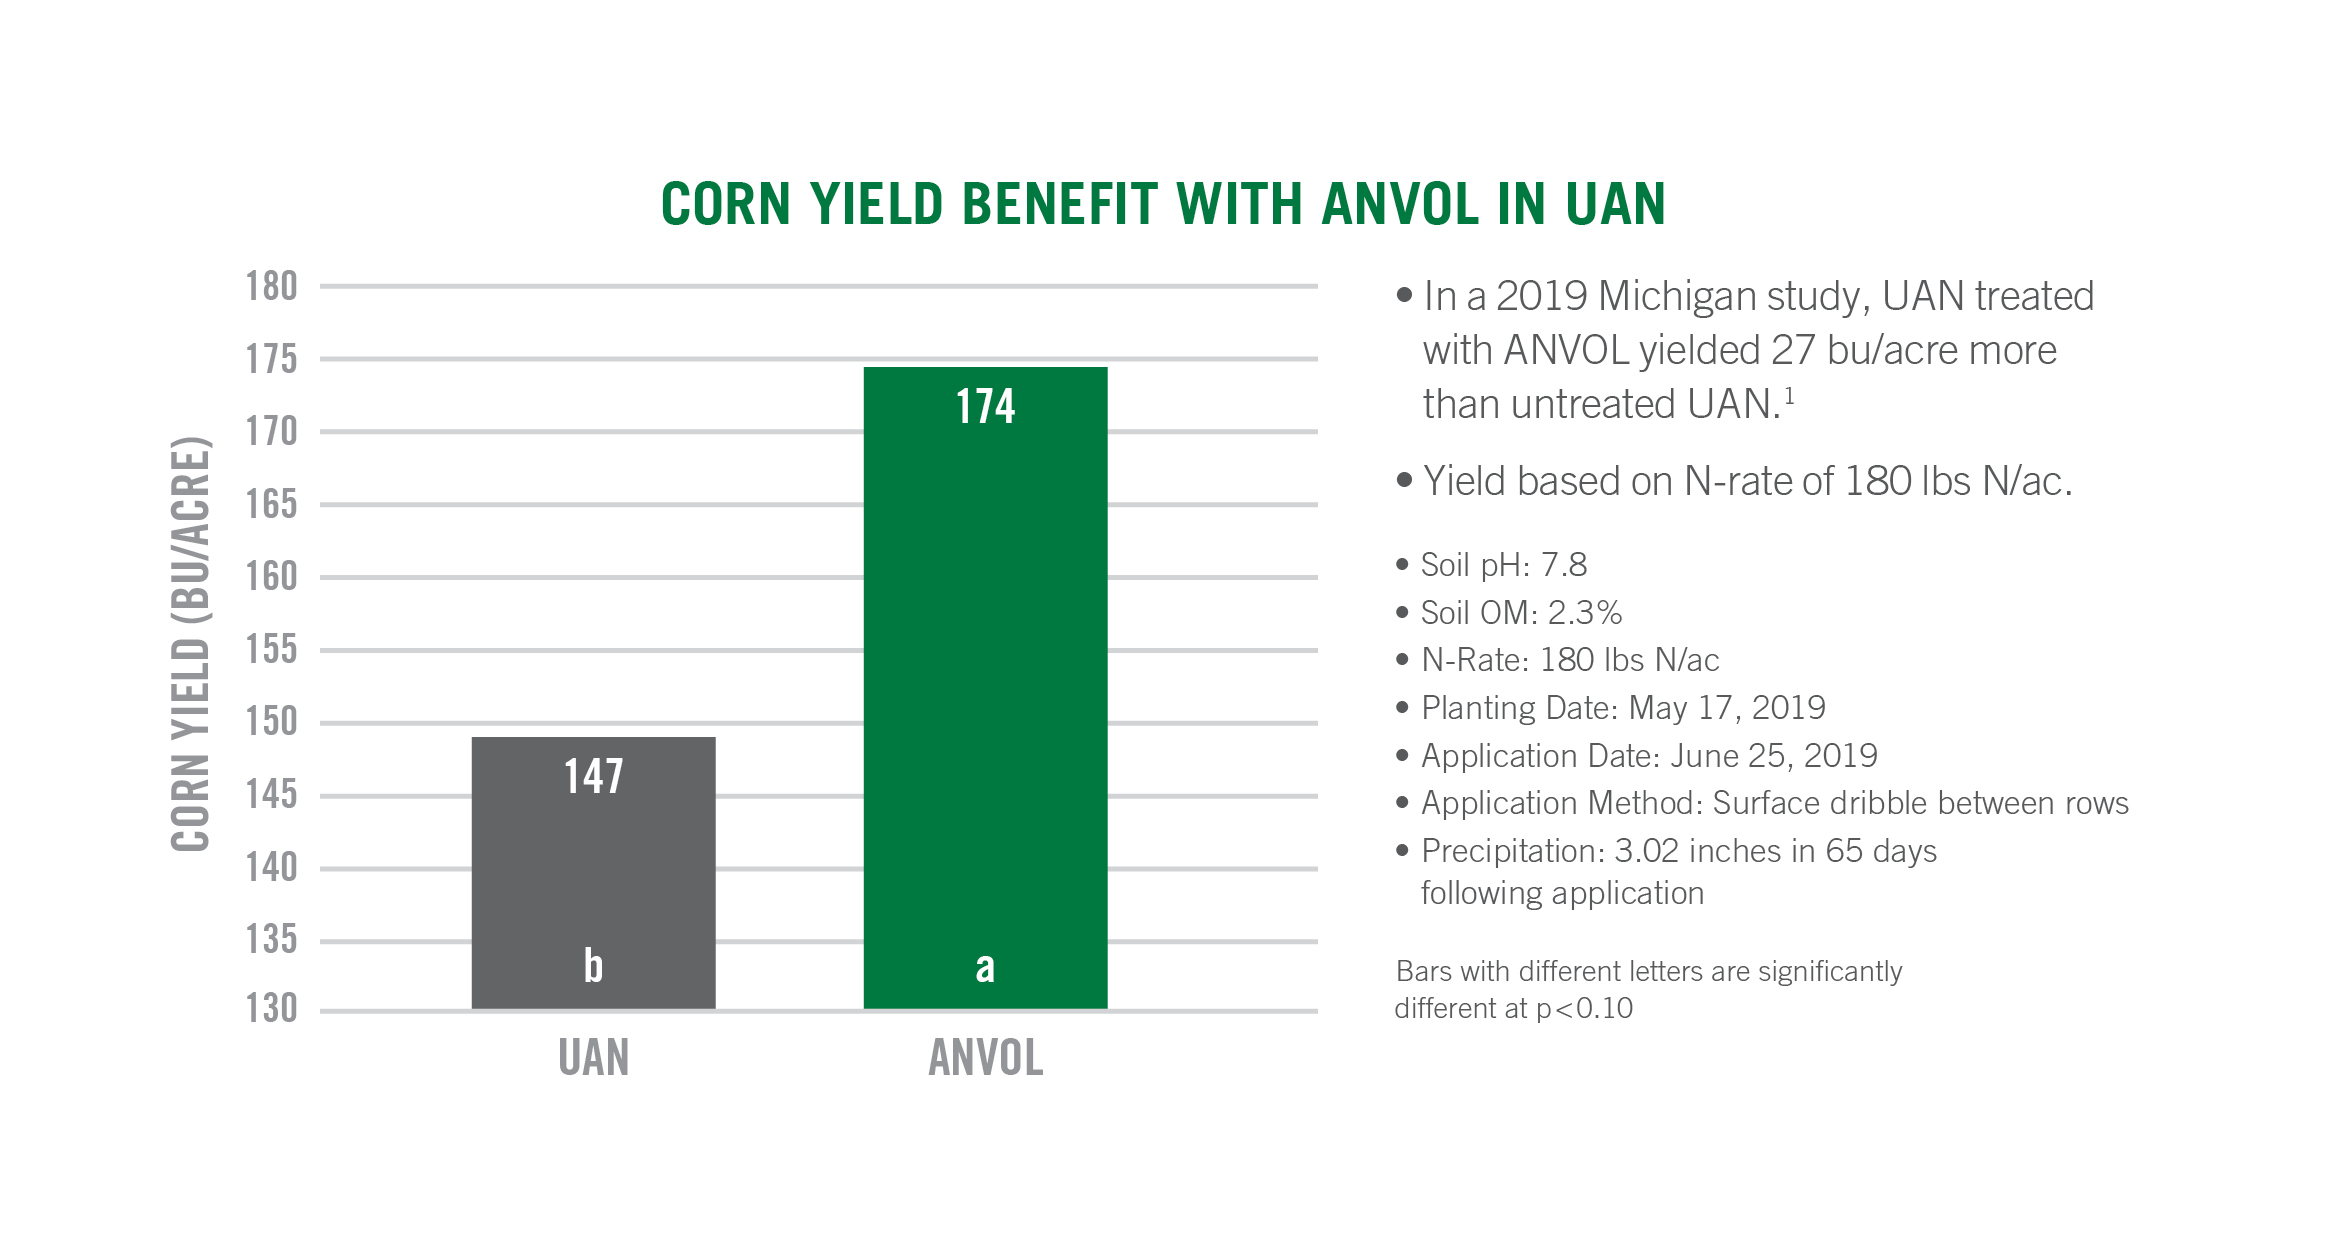 ANVOL Corn Yield Data